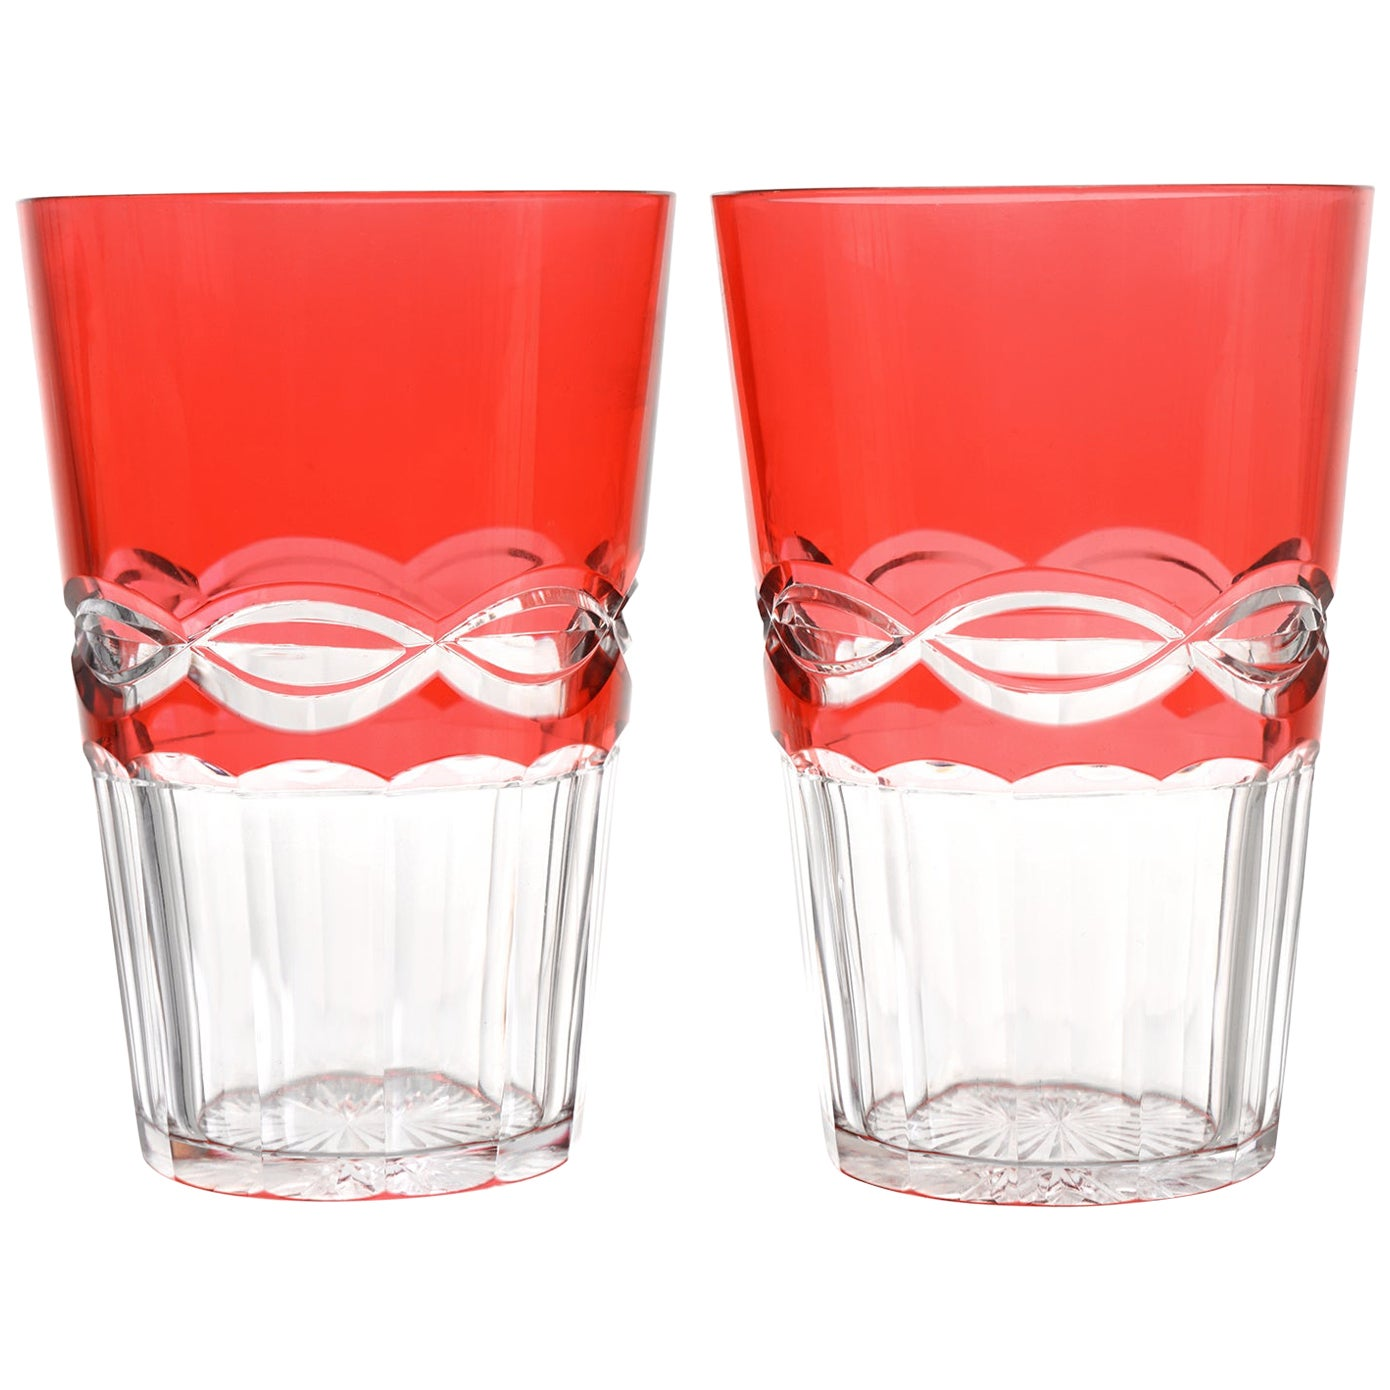 12 St. Louis Cranberry Crystal Tumblers